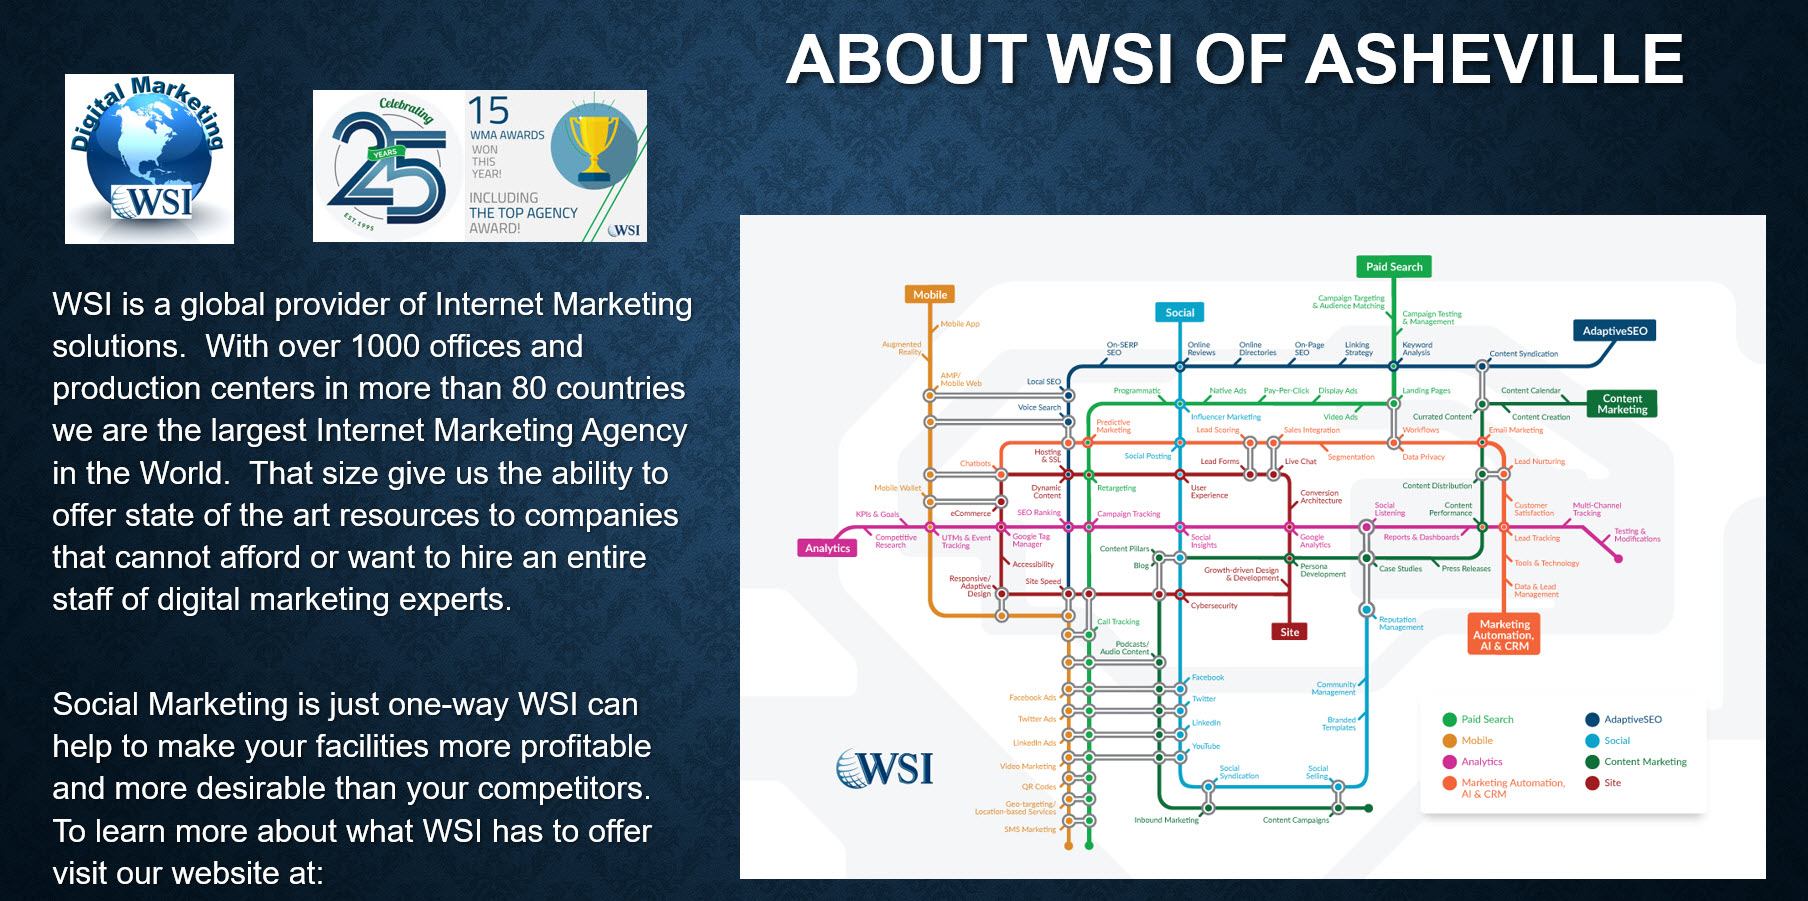 About WSI